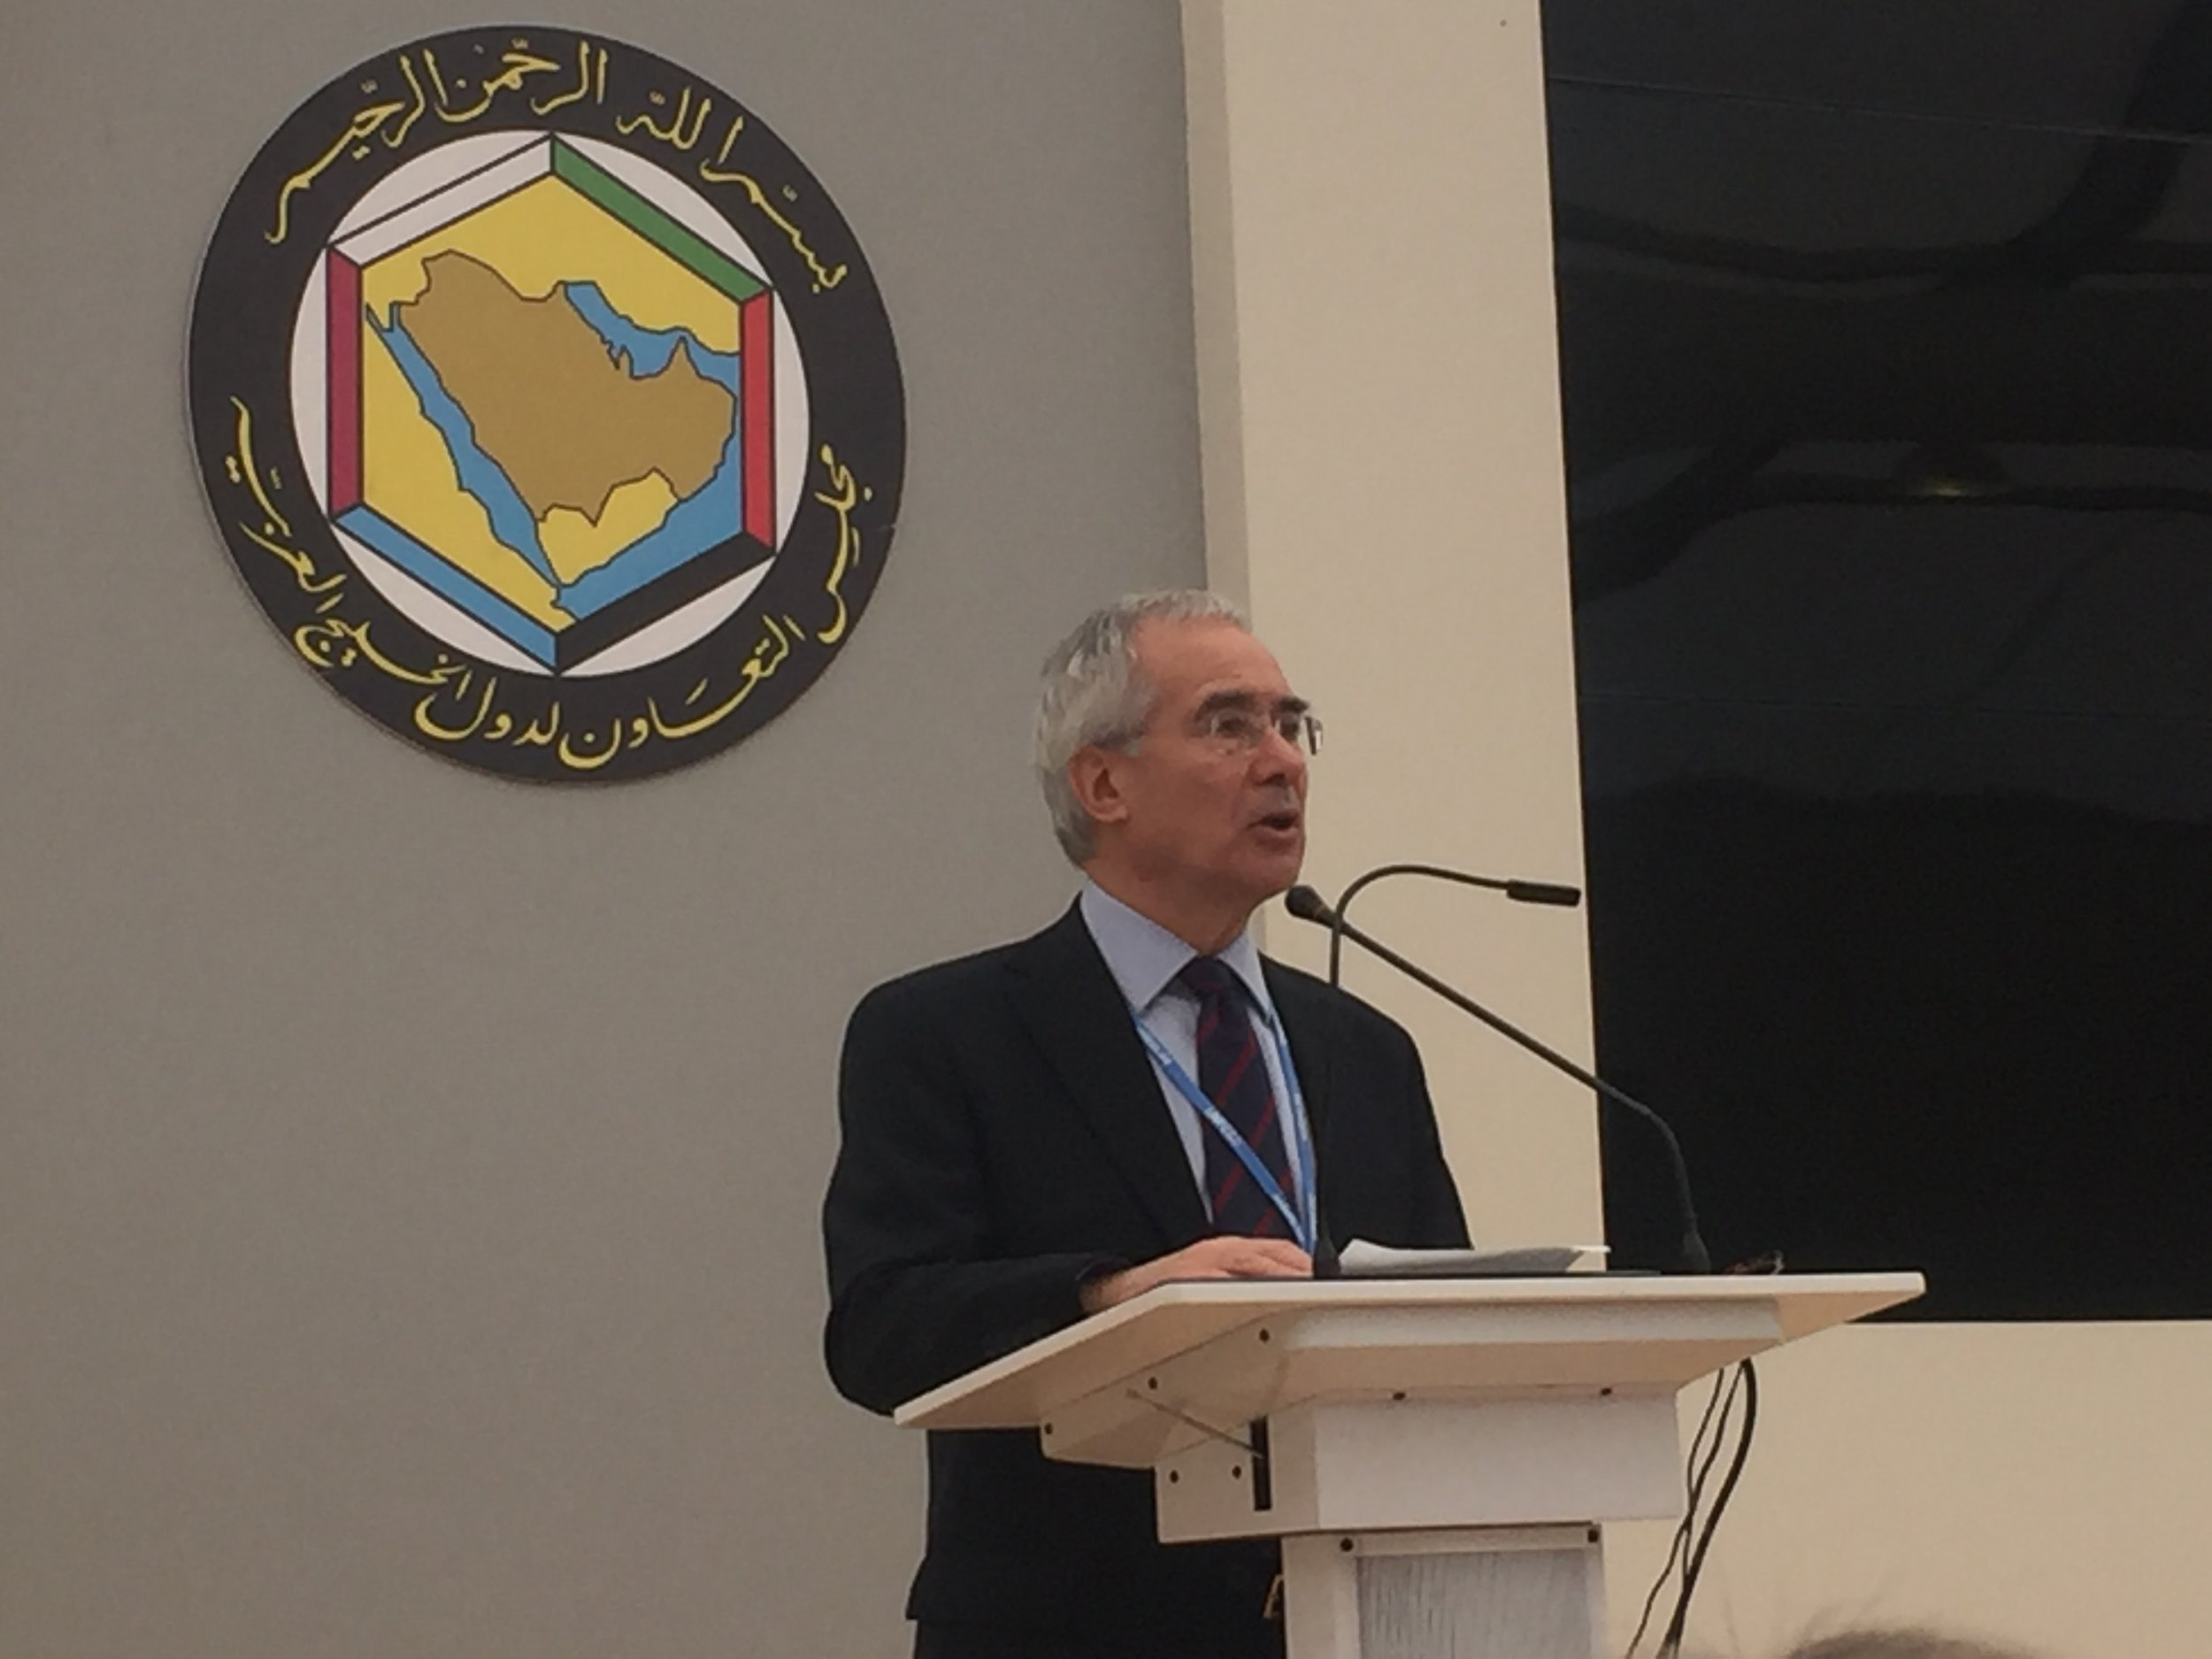 Lord Nicholas Stern provides closing remarks, emphasizing that researchers need to link with policy-makers to interact and learn from each other